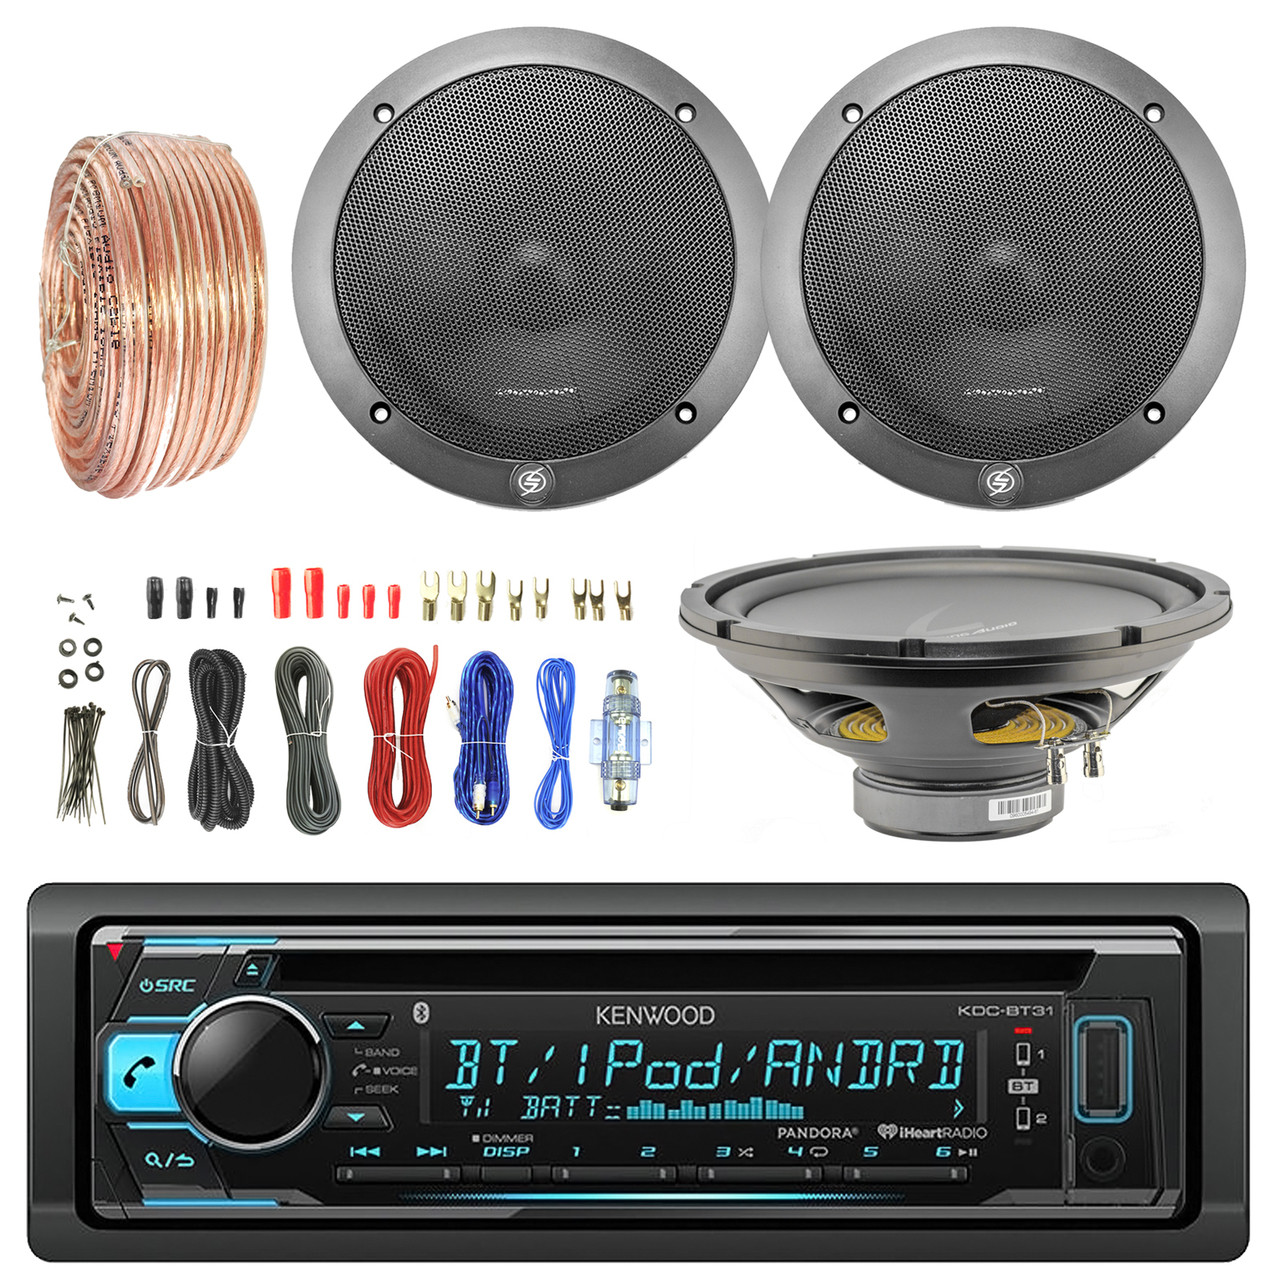 Outstanding 12 Single Voice Coil Subwoofer 6 5 Speakers Bluetooth Cd Radio Wiring 101 Olytiaxxcnl